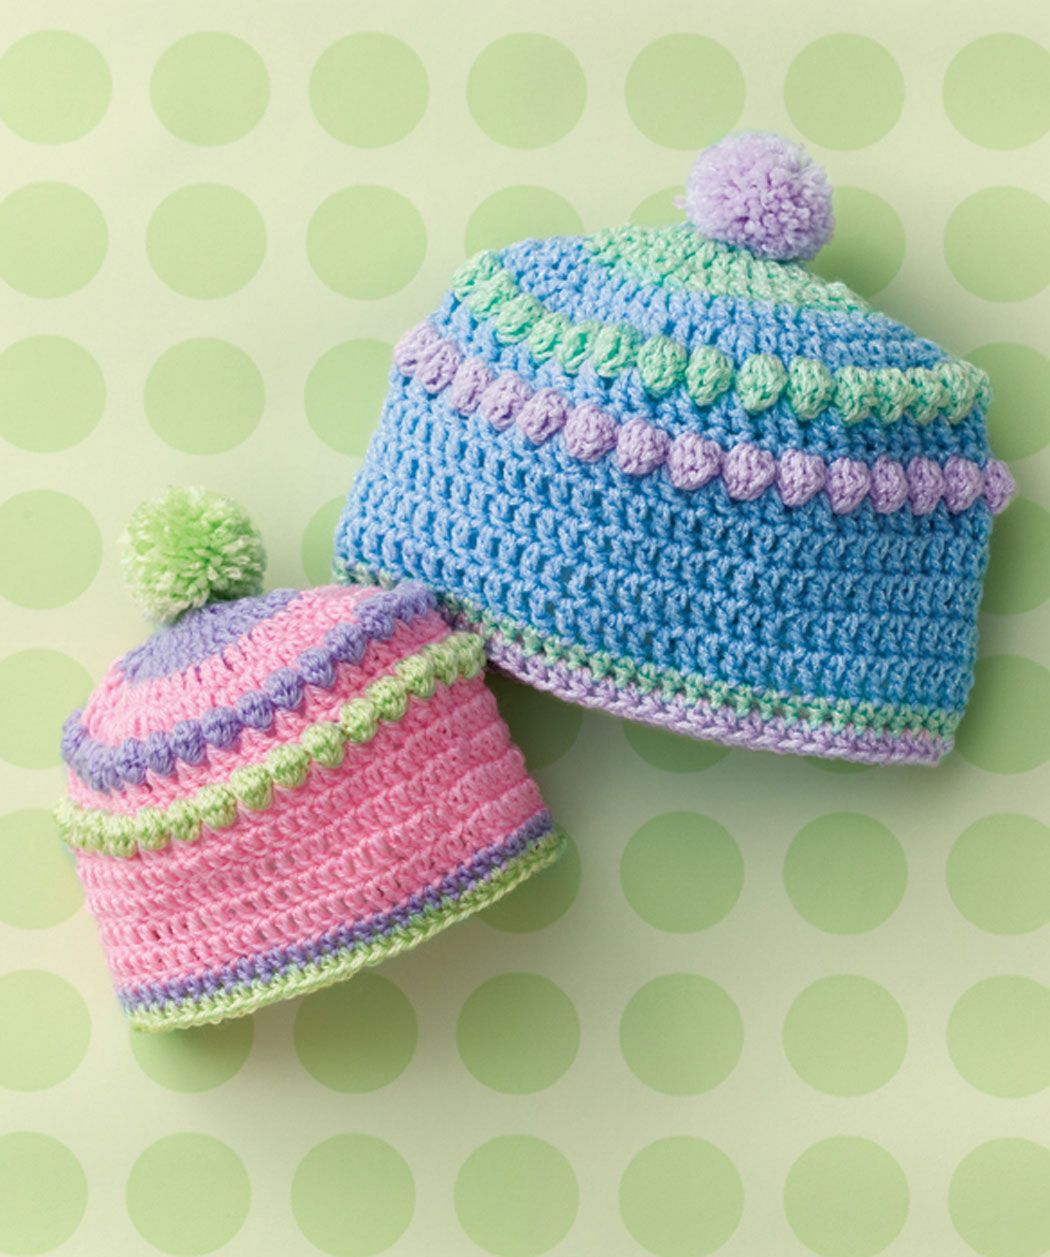 Baby will look fashionable in this colorful hat perfect for shopping or visiting grandma. Make a few now and have them ready for the next shower! #redheartyarn